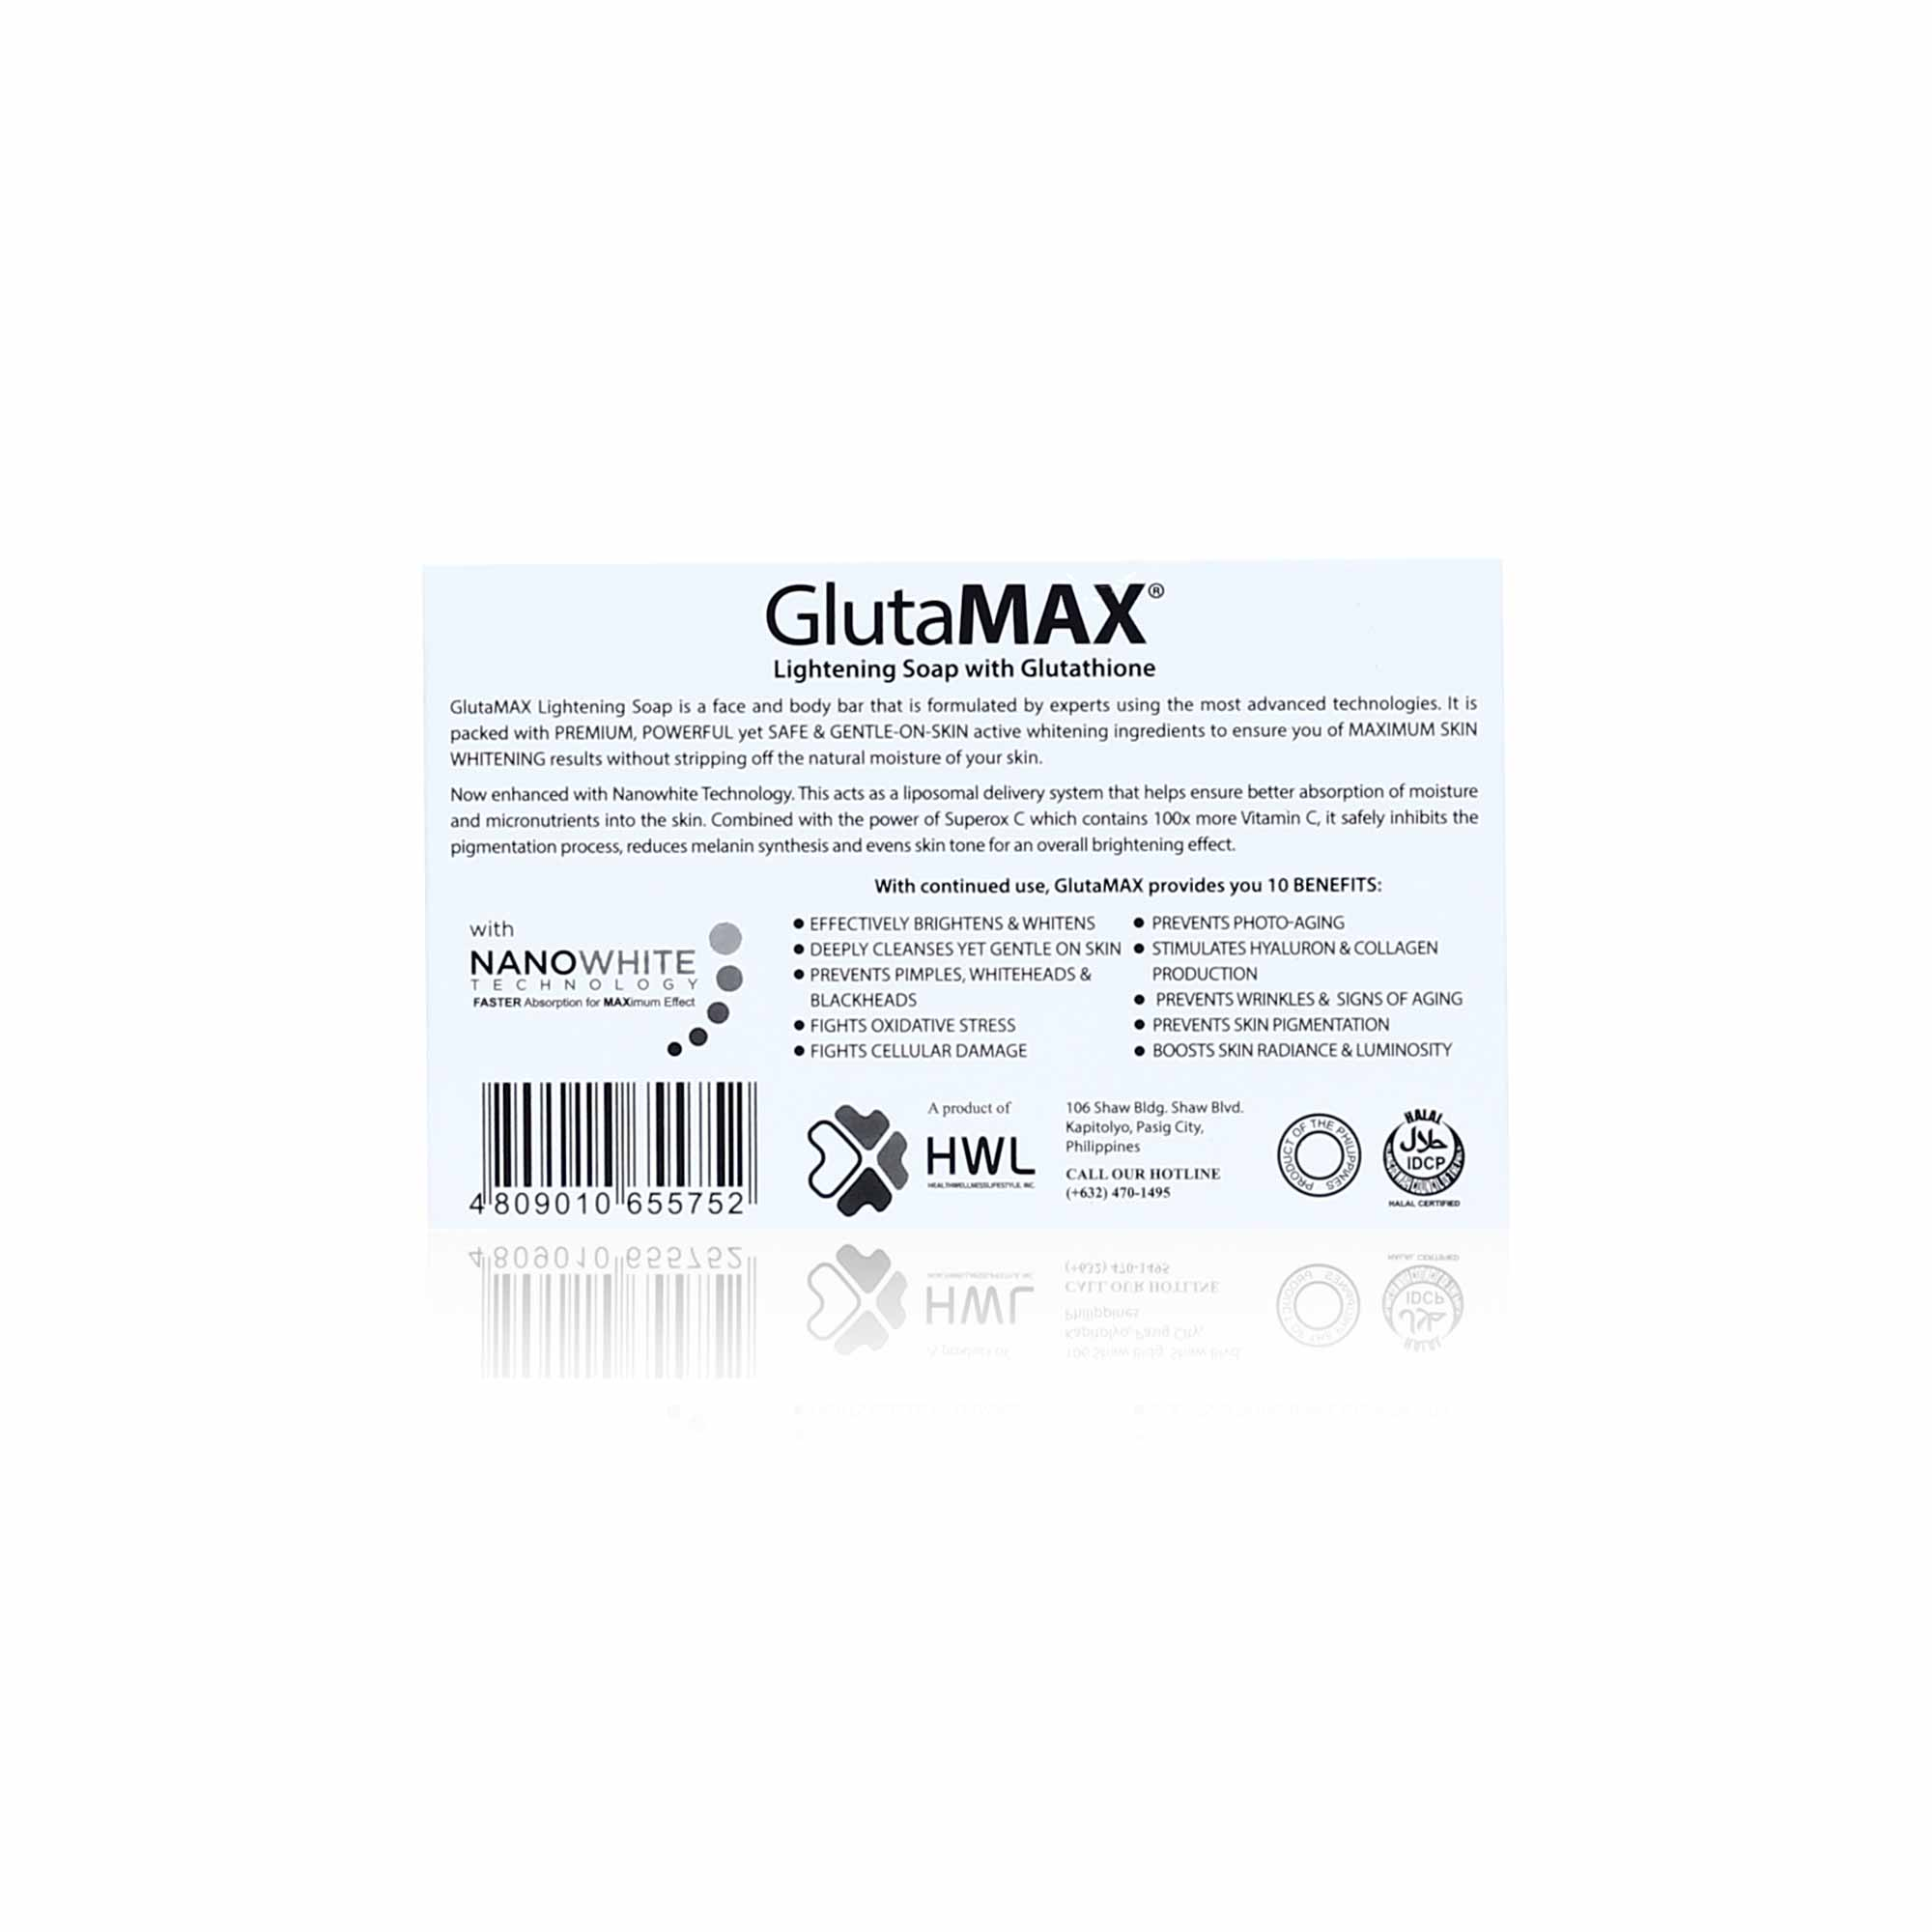 GlutaMAX Soap 135g with Nano White Technology